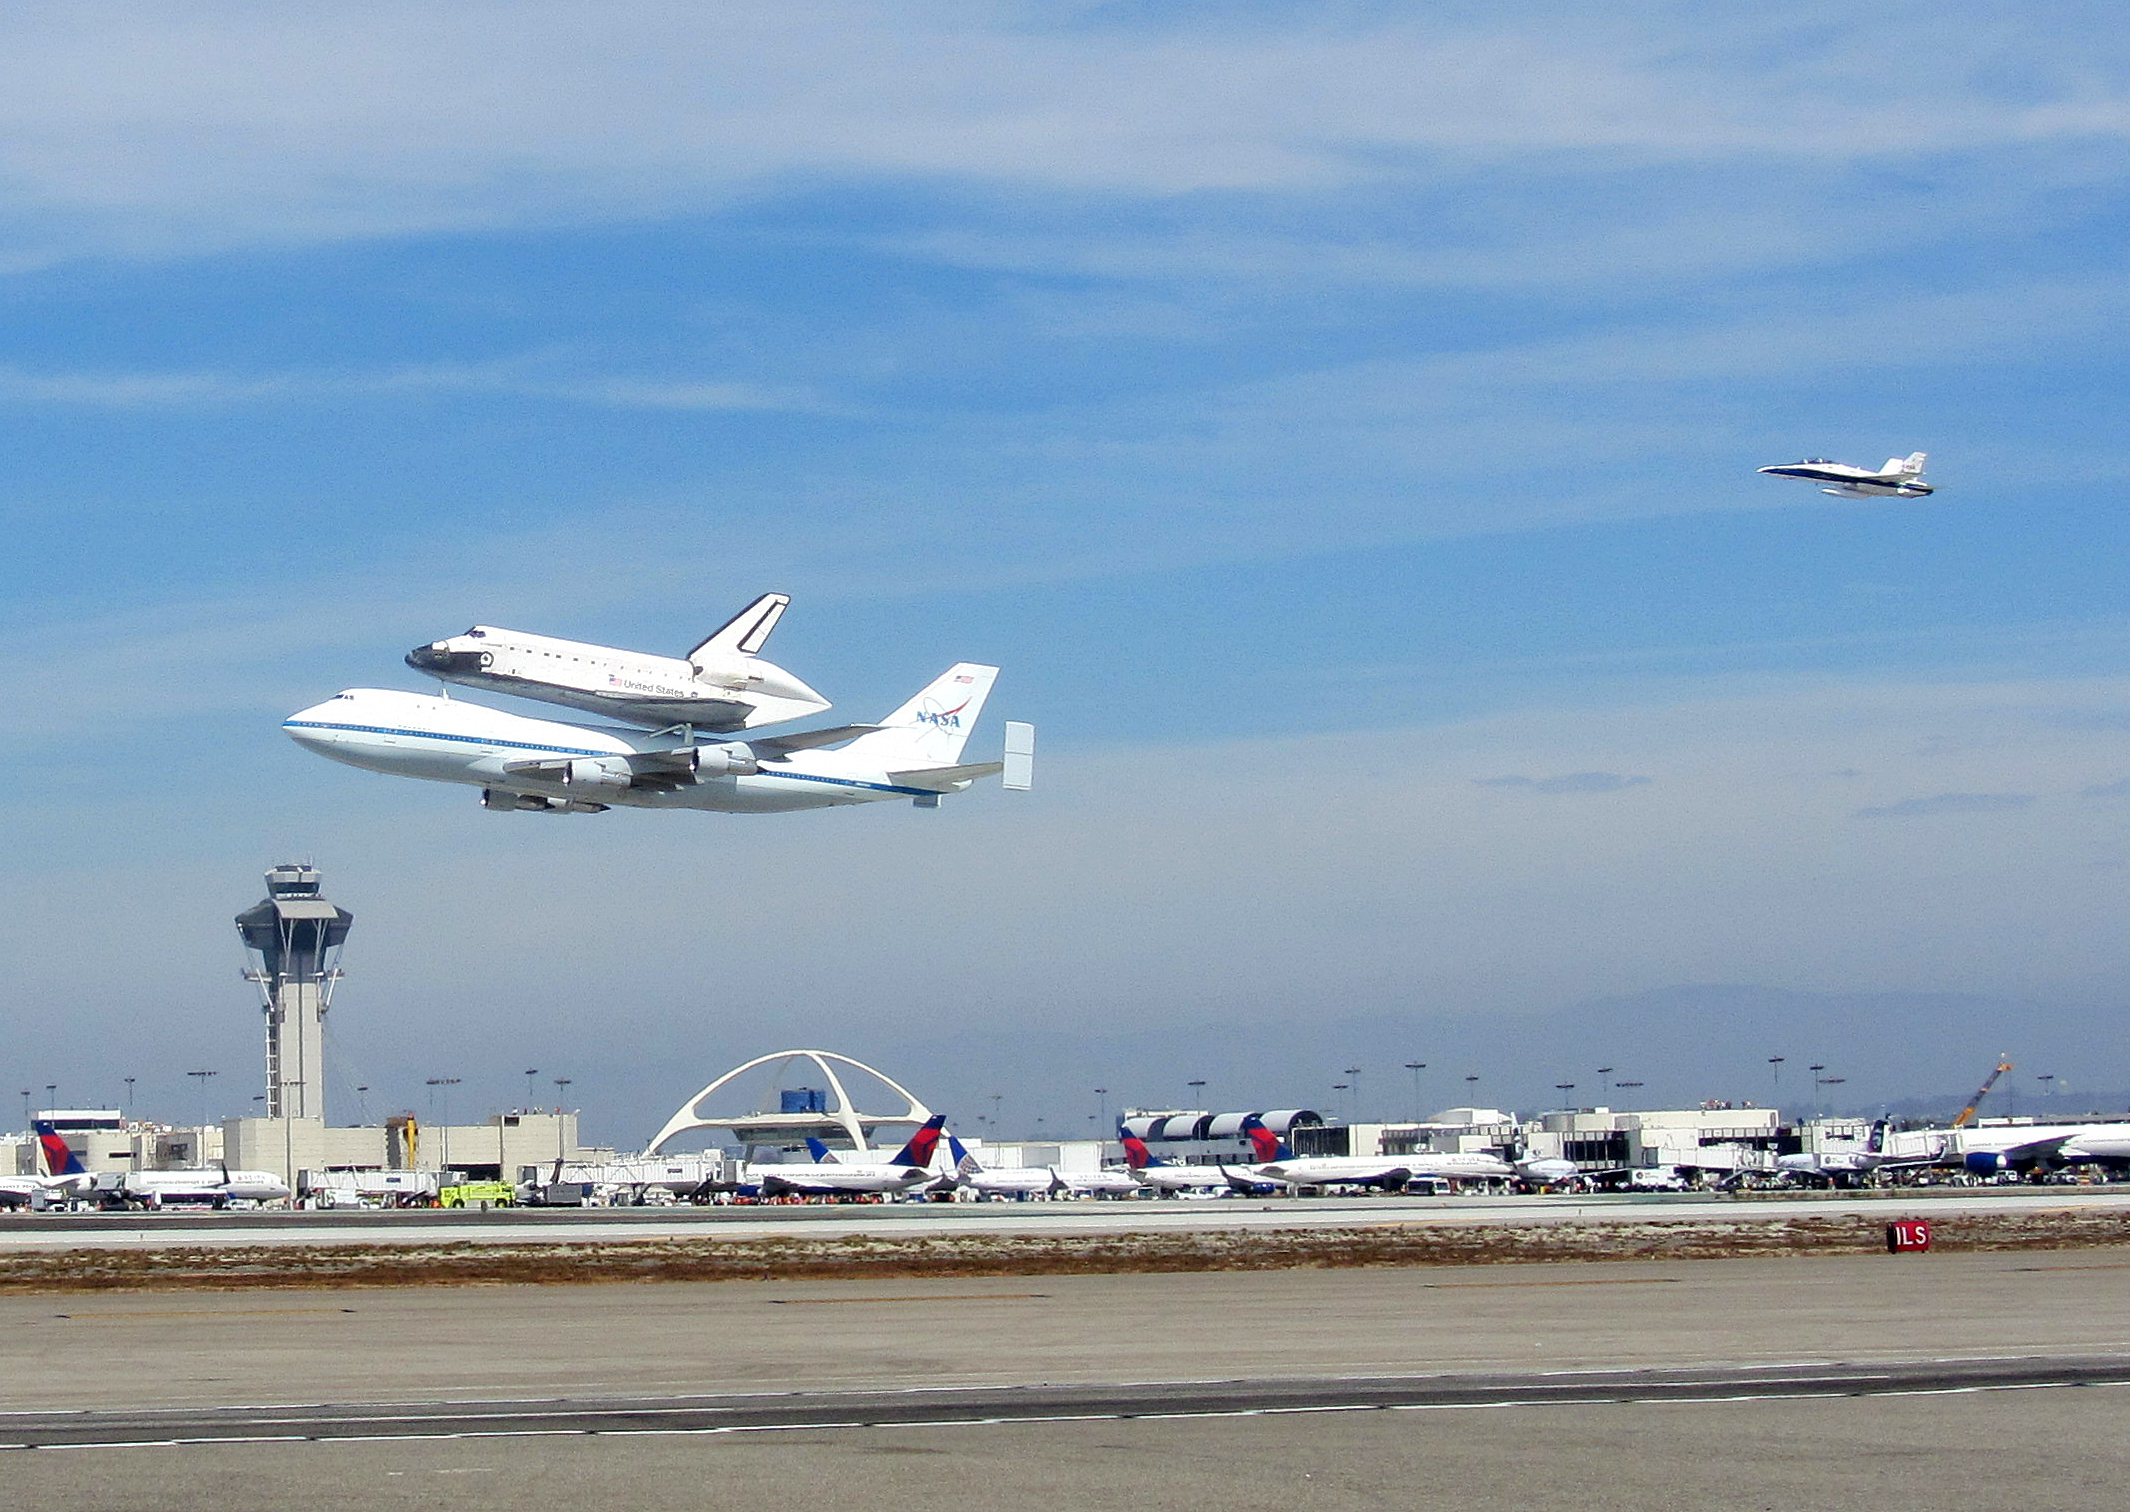 Shuttle Endeavour Flies Over LAX